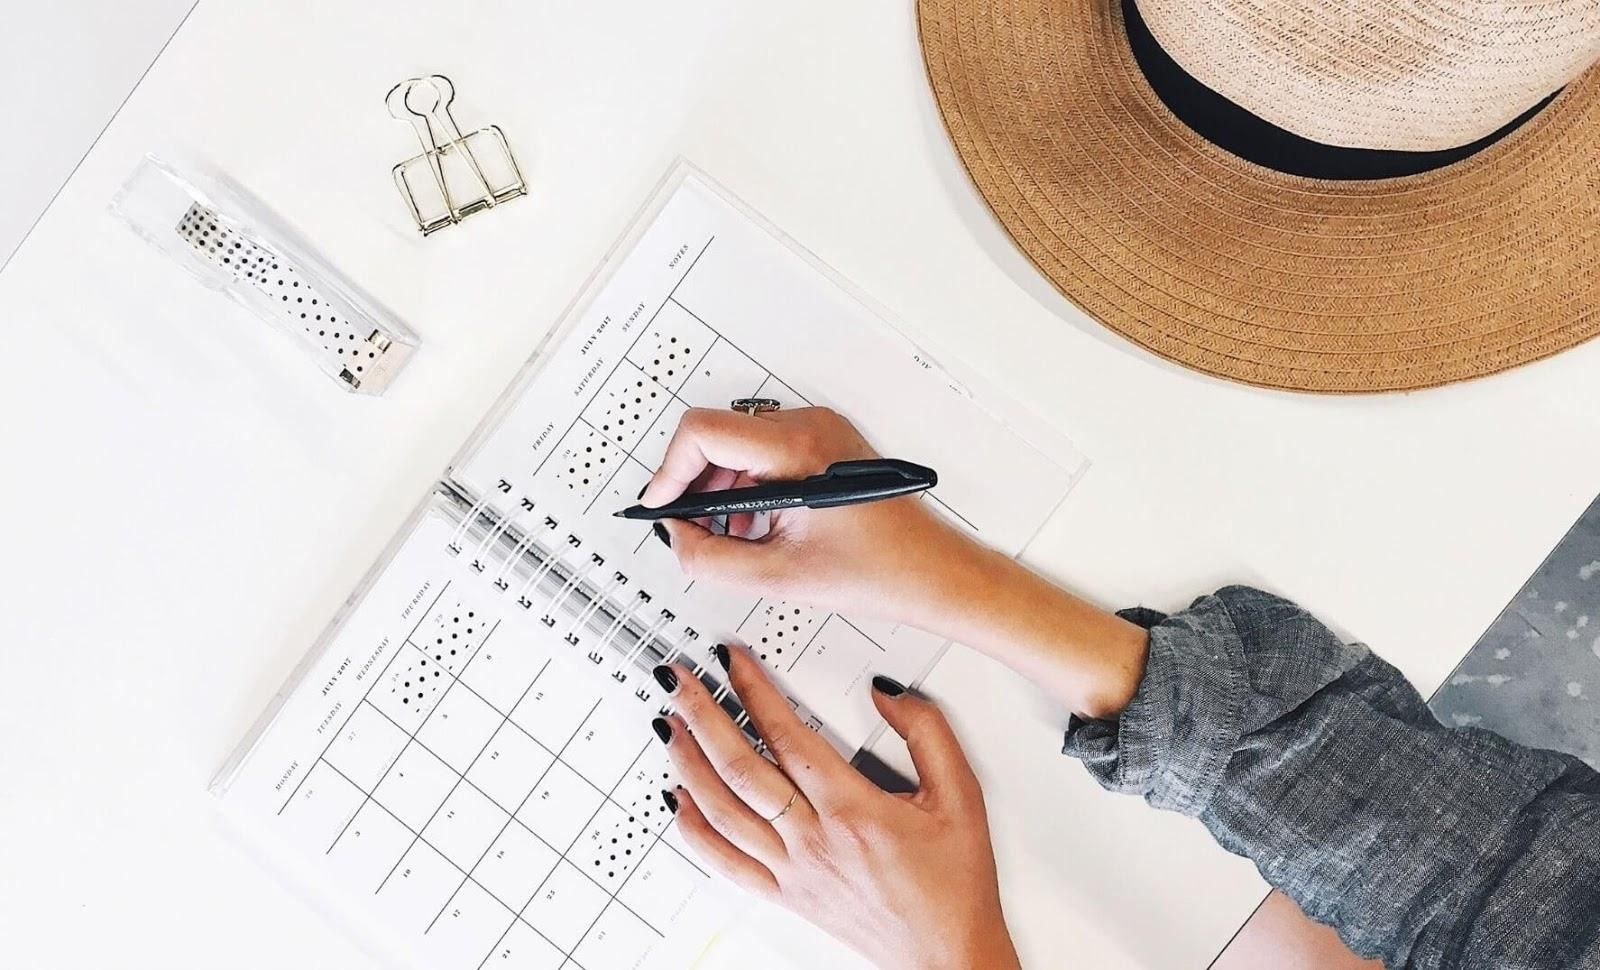 Image of a person taking notes on a diary planner